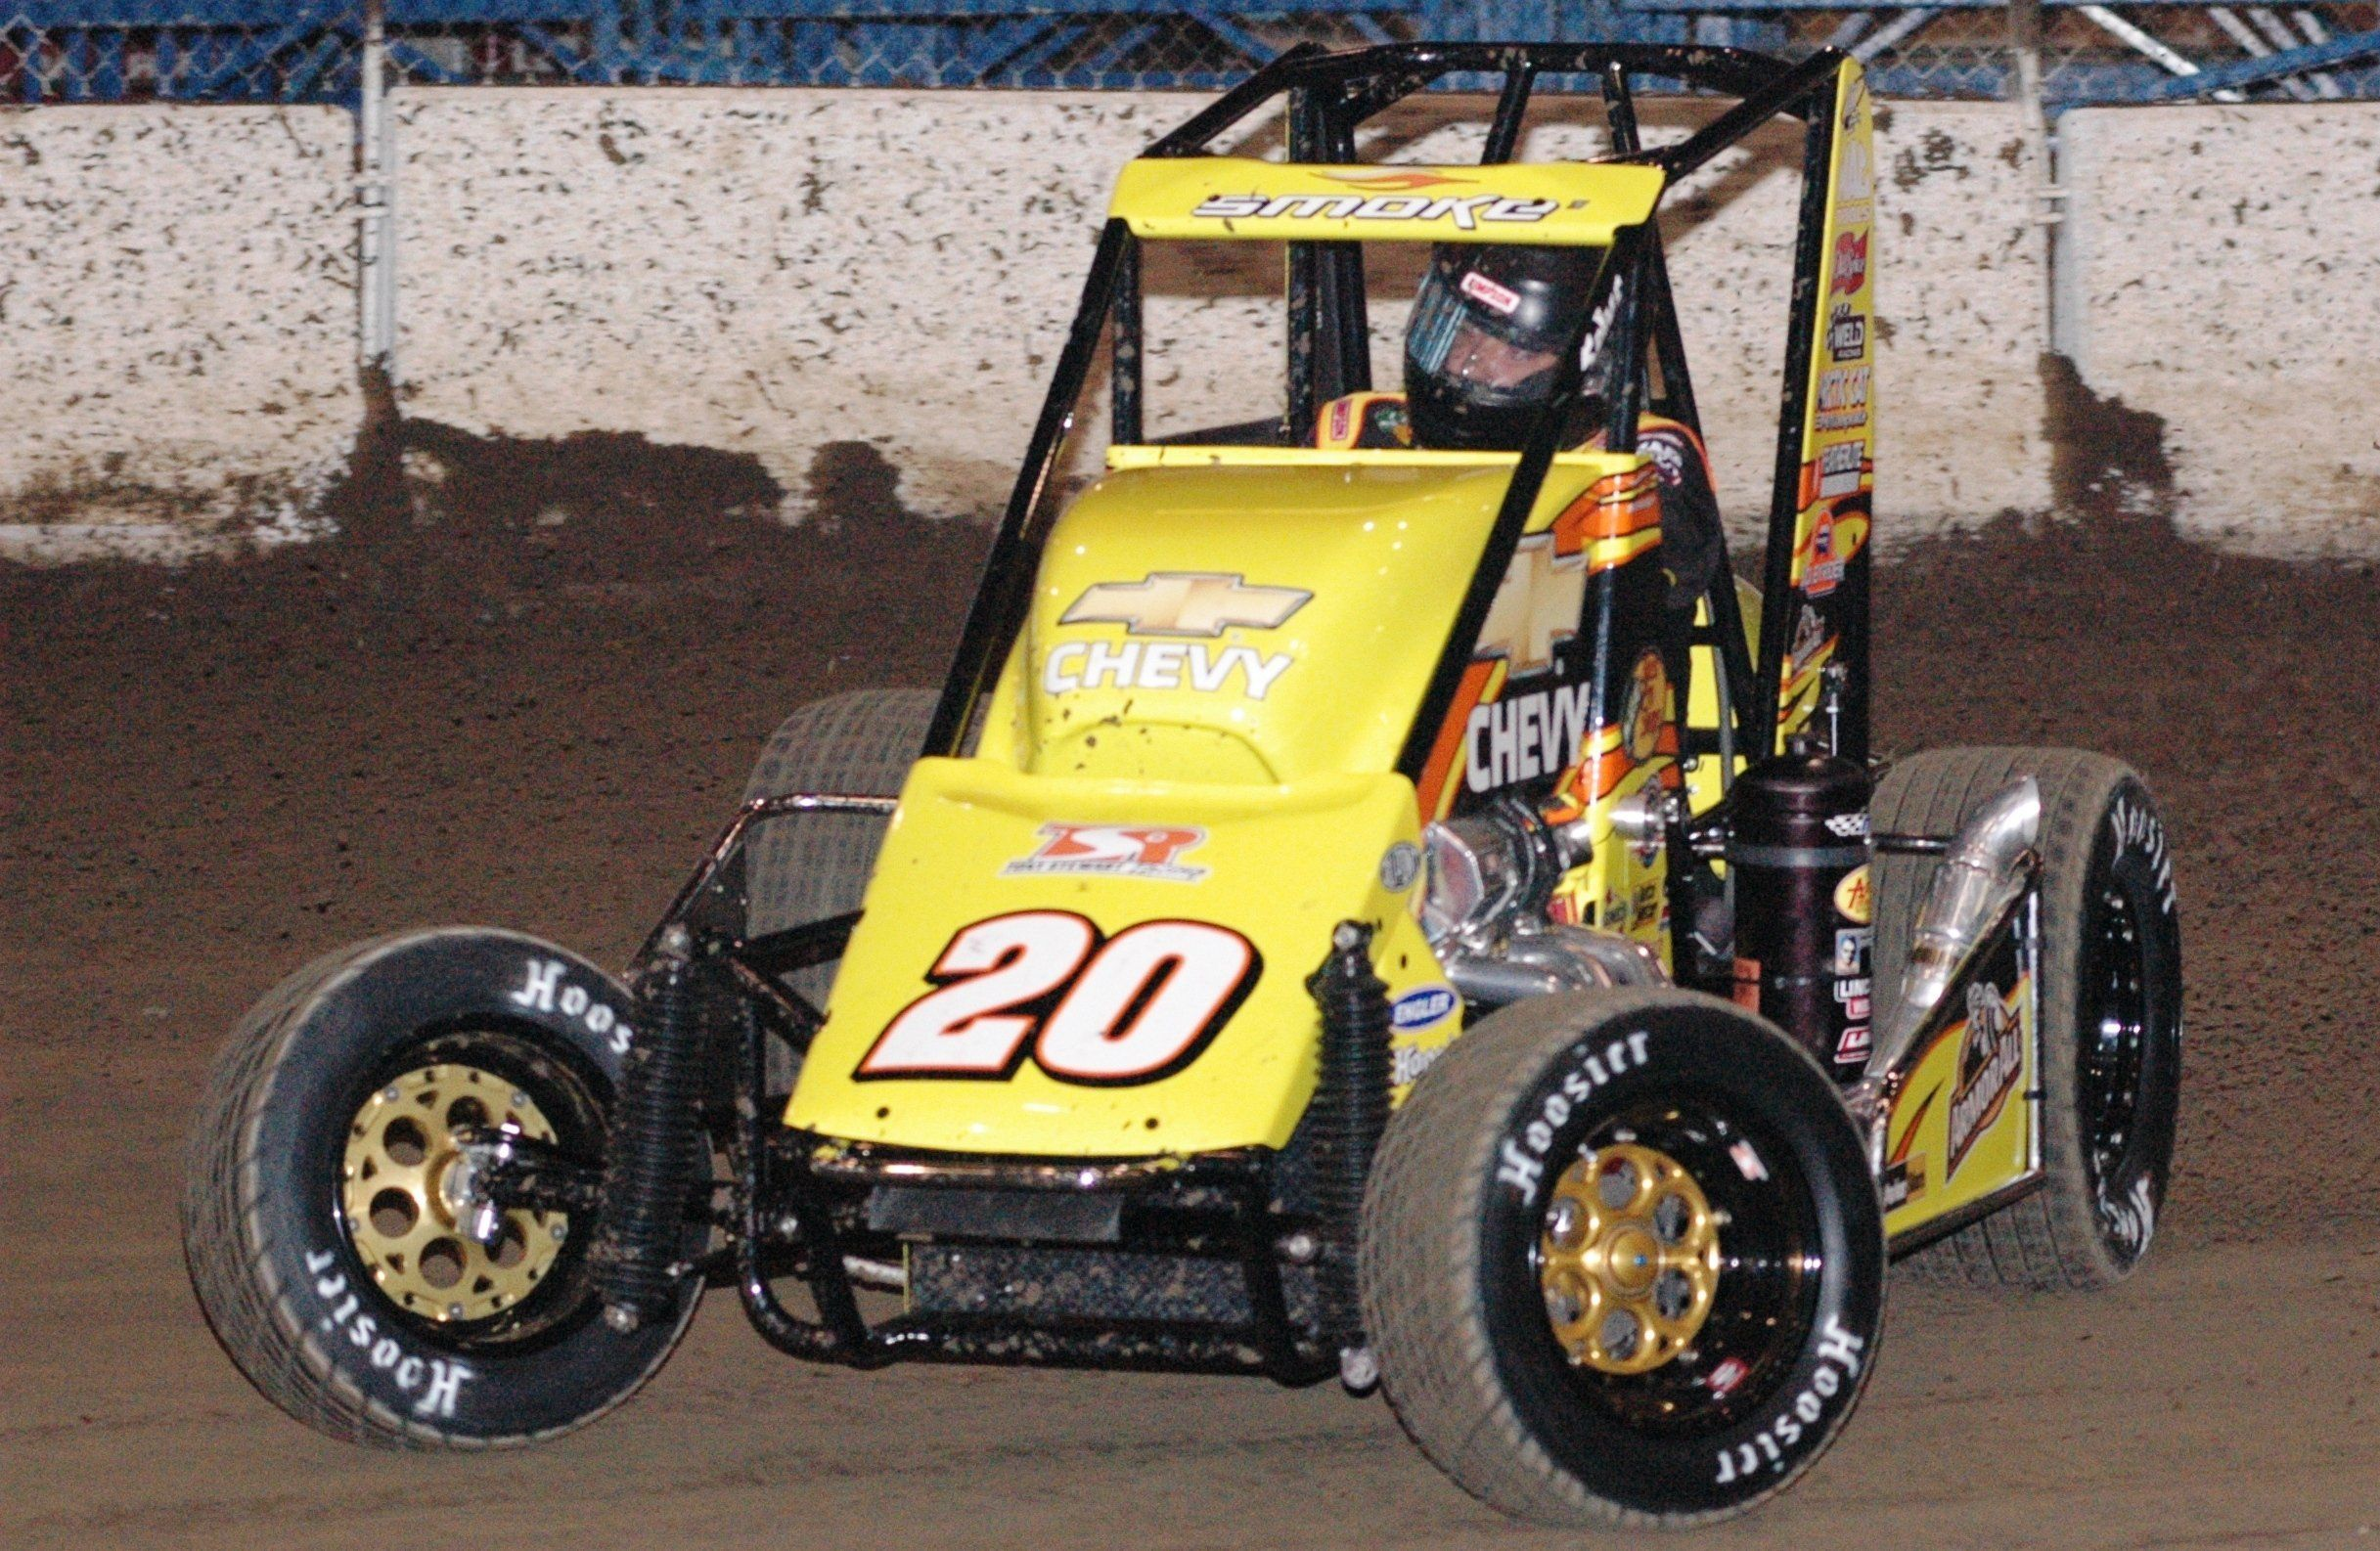 Ovaltrack midget for sale